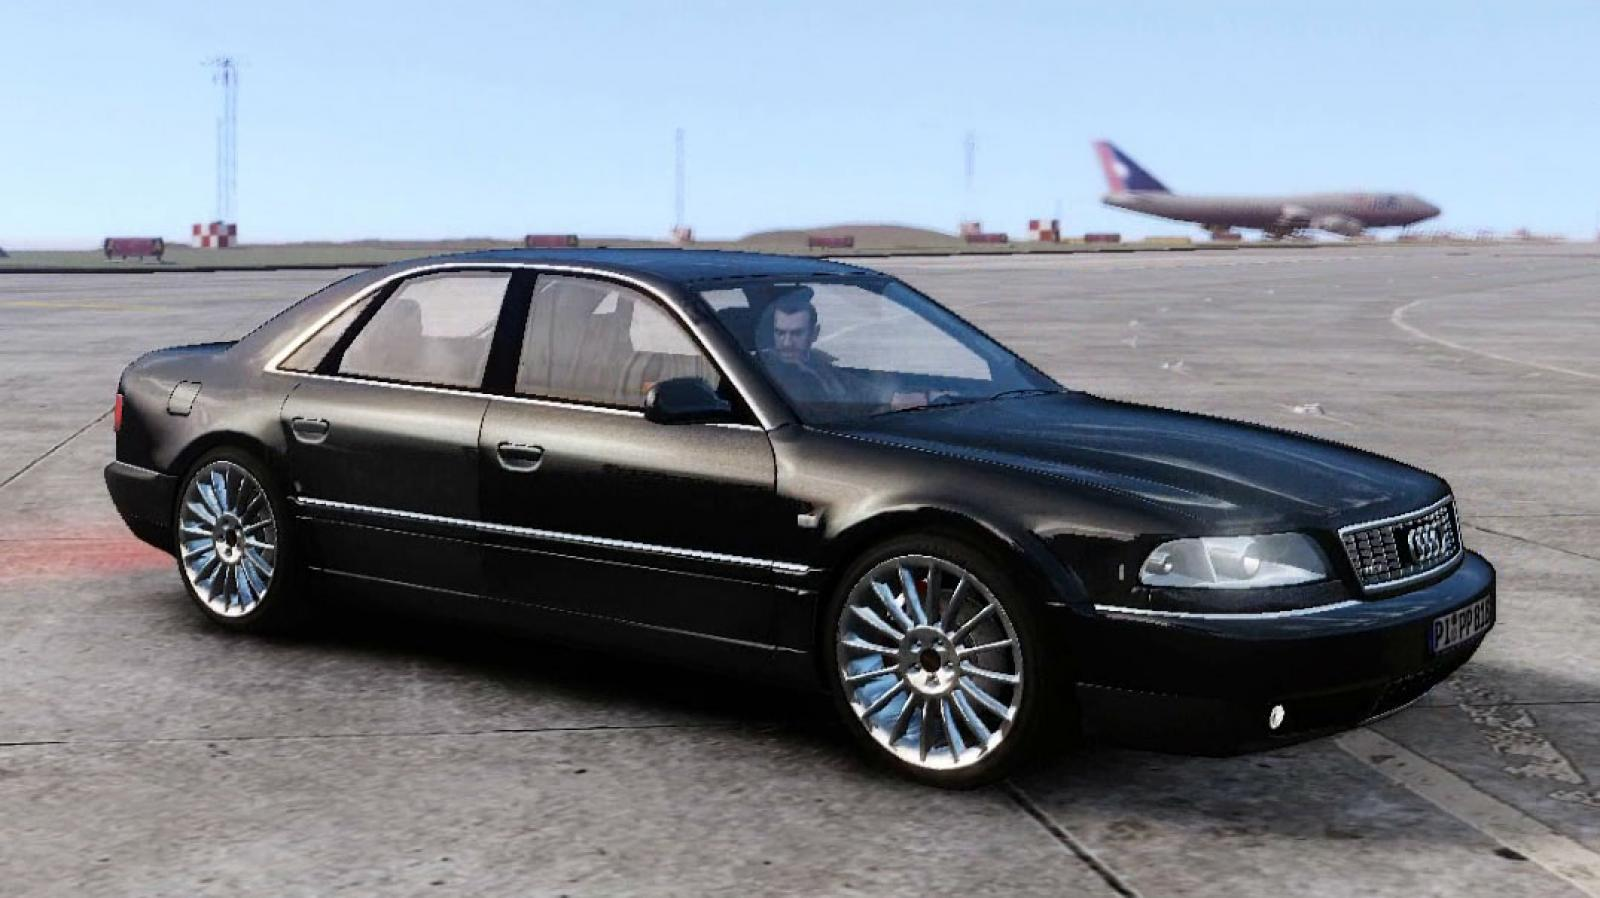 2002 Audi A8 Information And Photos Zombiedrive